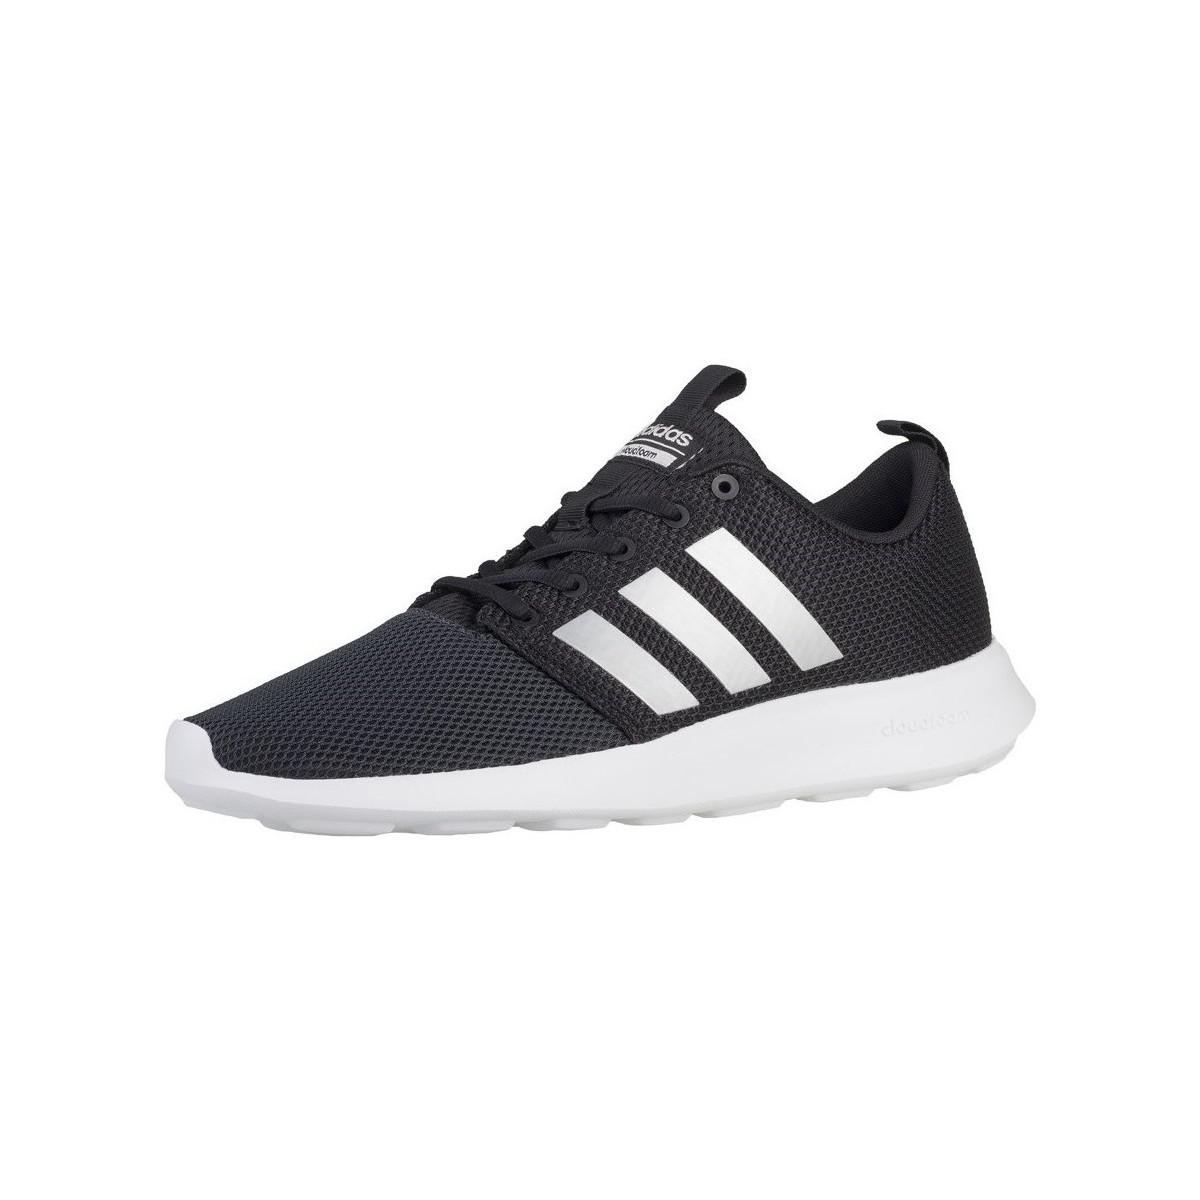 12bfa16079be4 adidas Cloudfoam Swift Racer Men s Shoes (trainers) In Black in ...